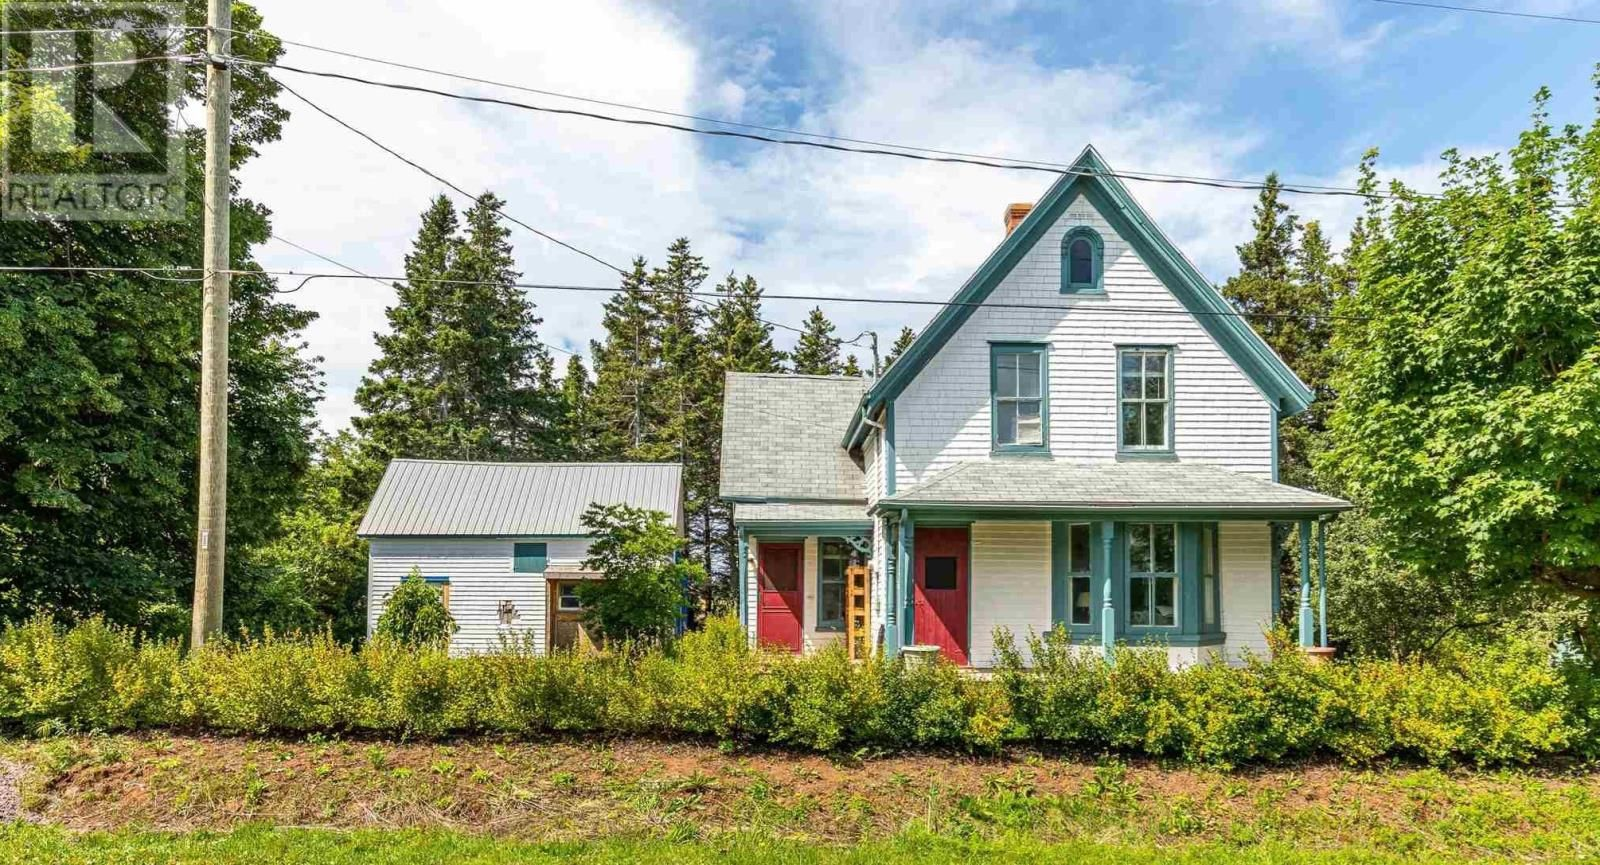 Main Photo: 2141 Route 112 in Central Bedeque: House for sale : MLS®# 202121412